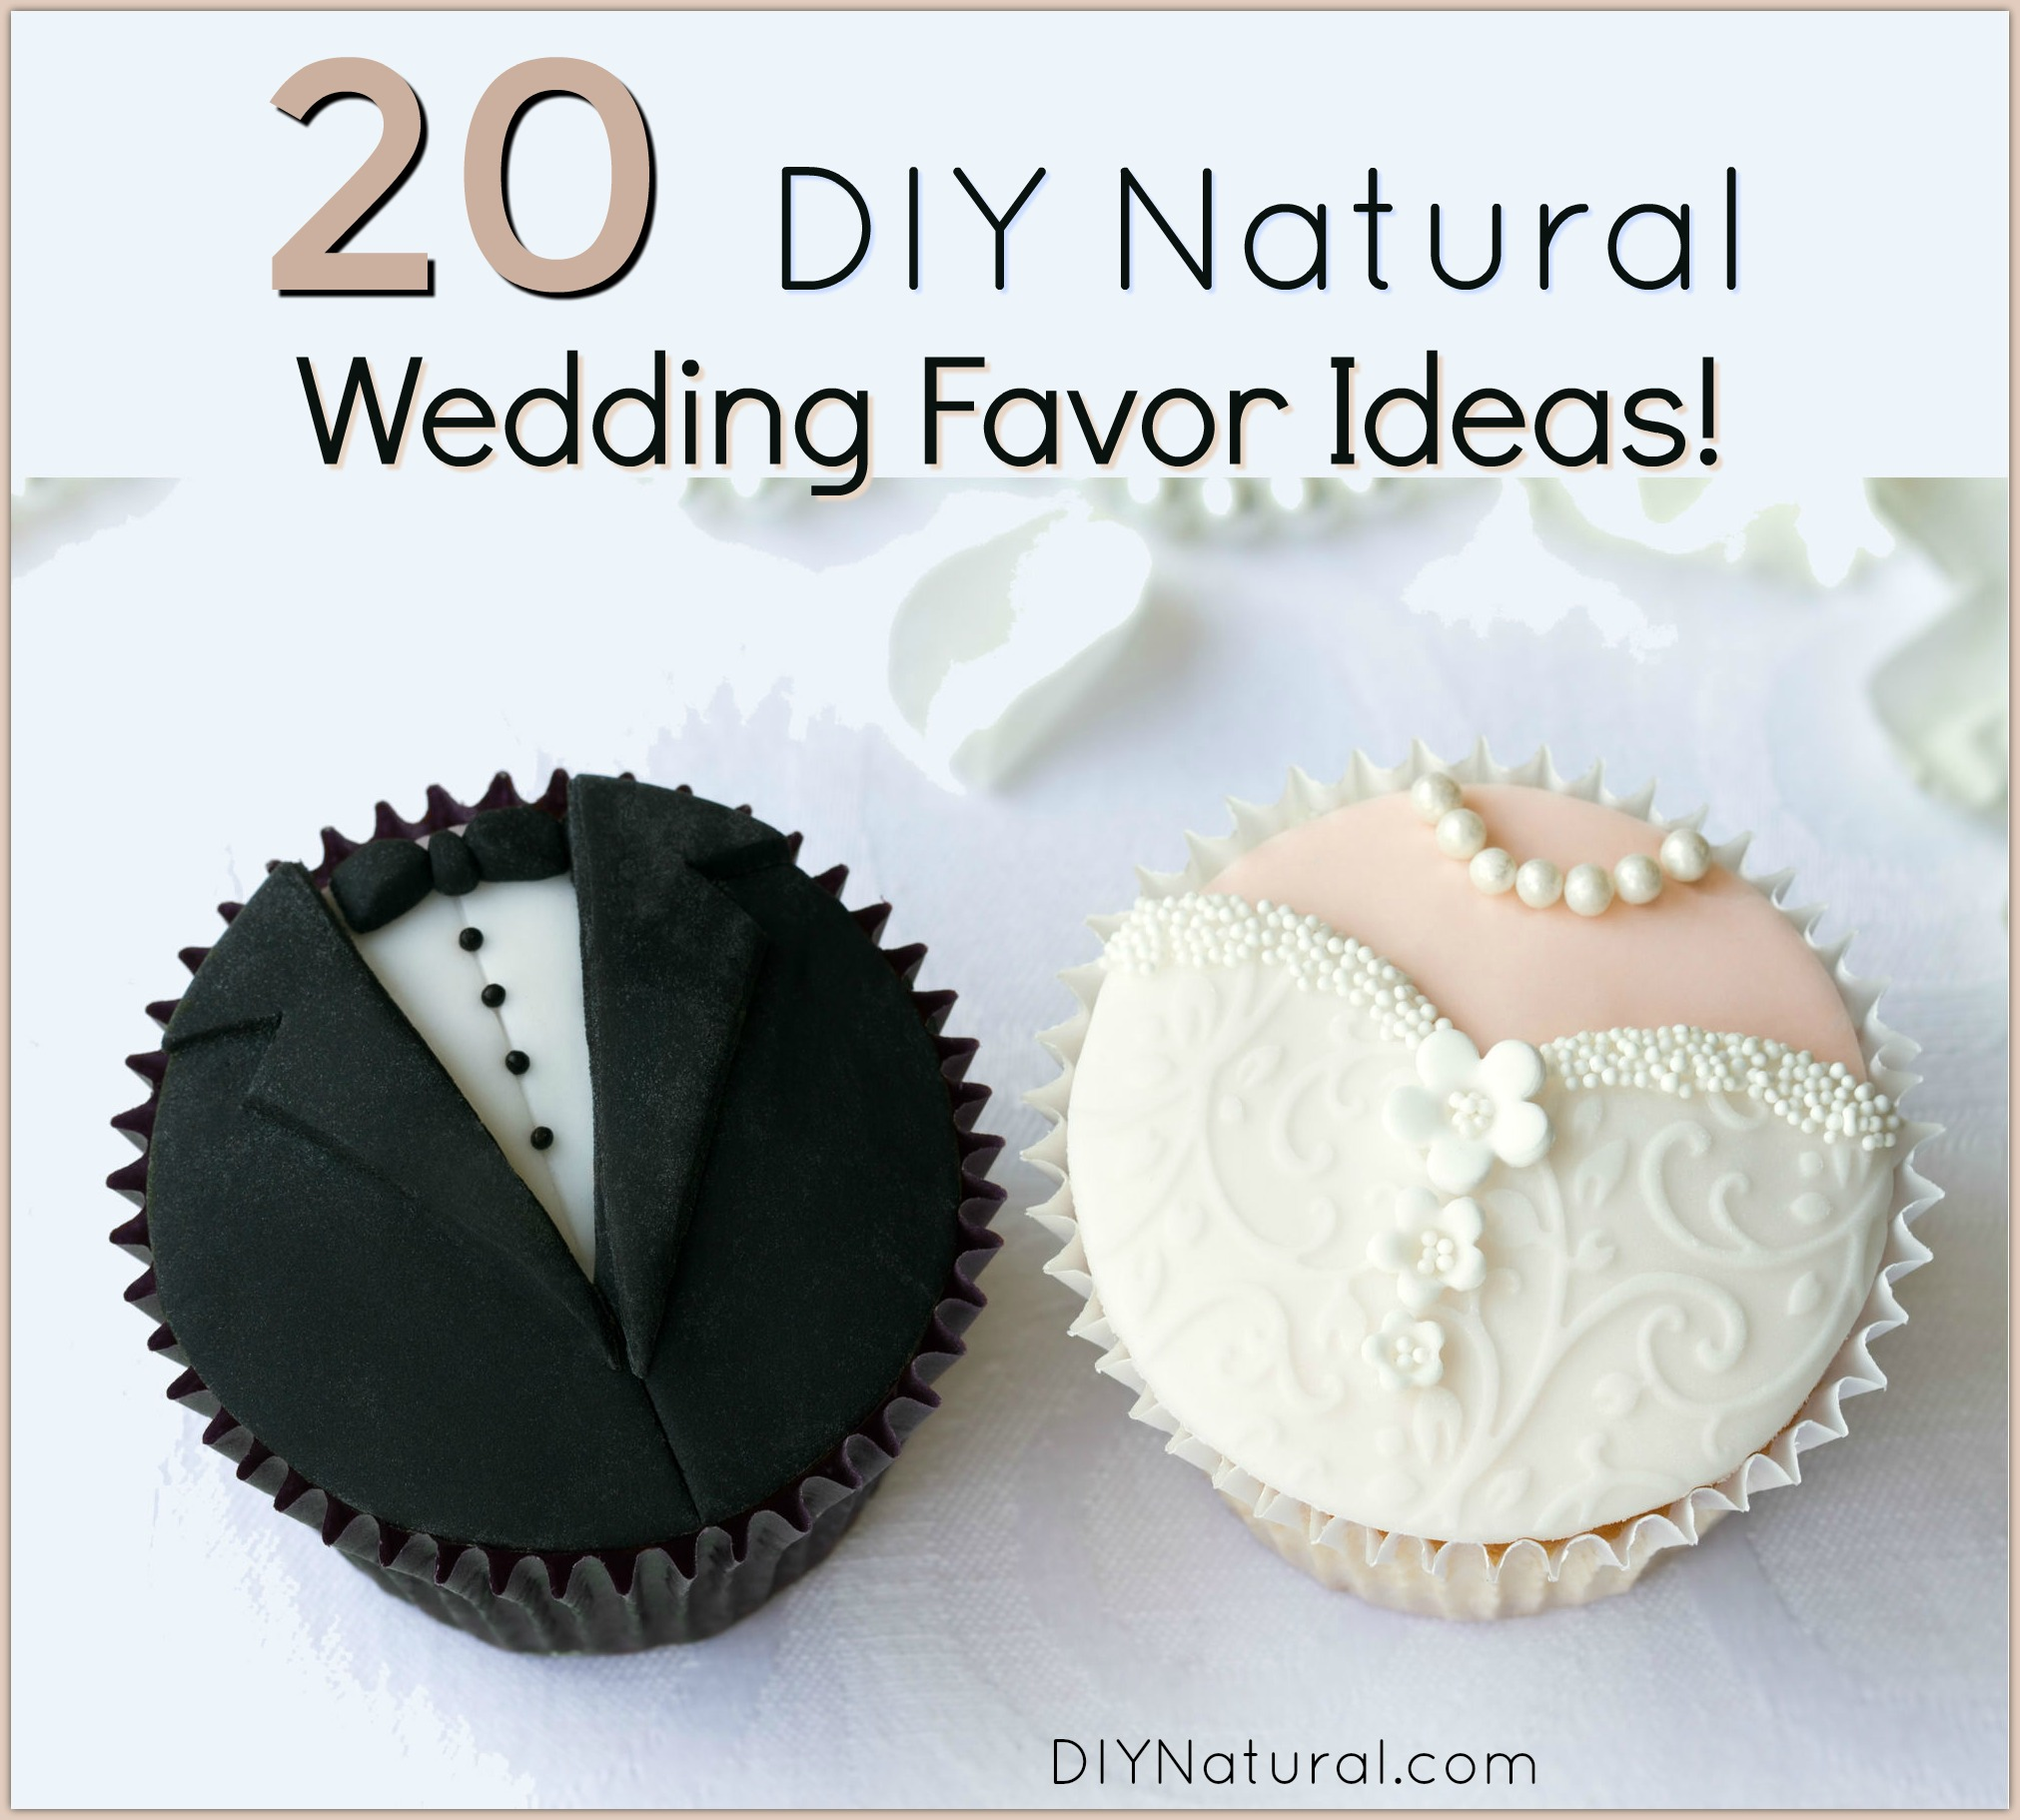 DIY Wedding Favors: 20 Ideas For Amazing Natural Wedding